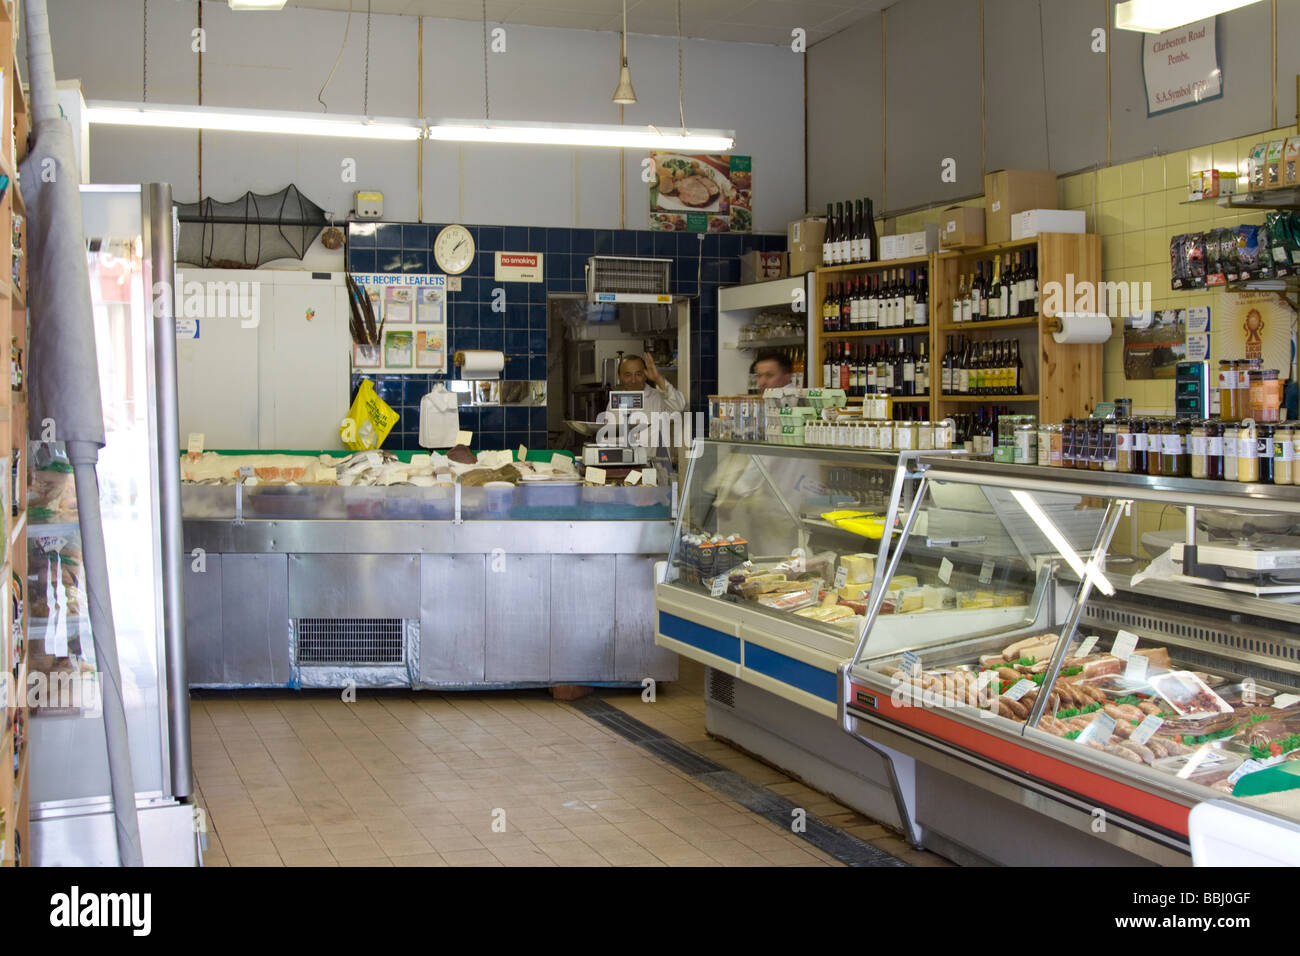 B & M Seafoods & Bio Metzger - Kentish Town - Camden - London Stockbild